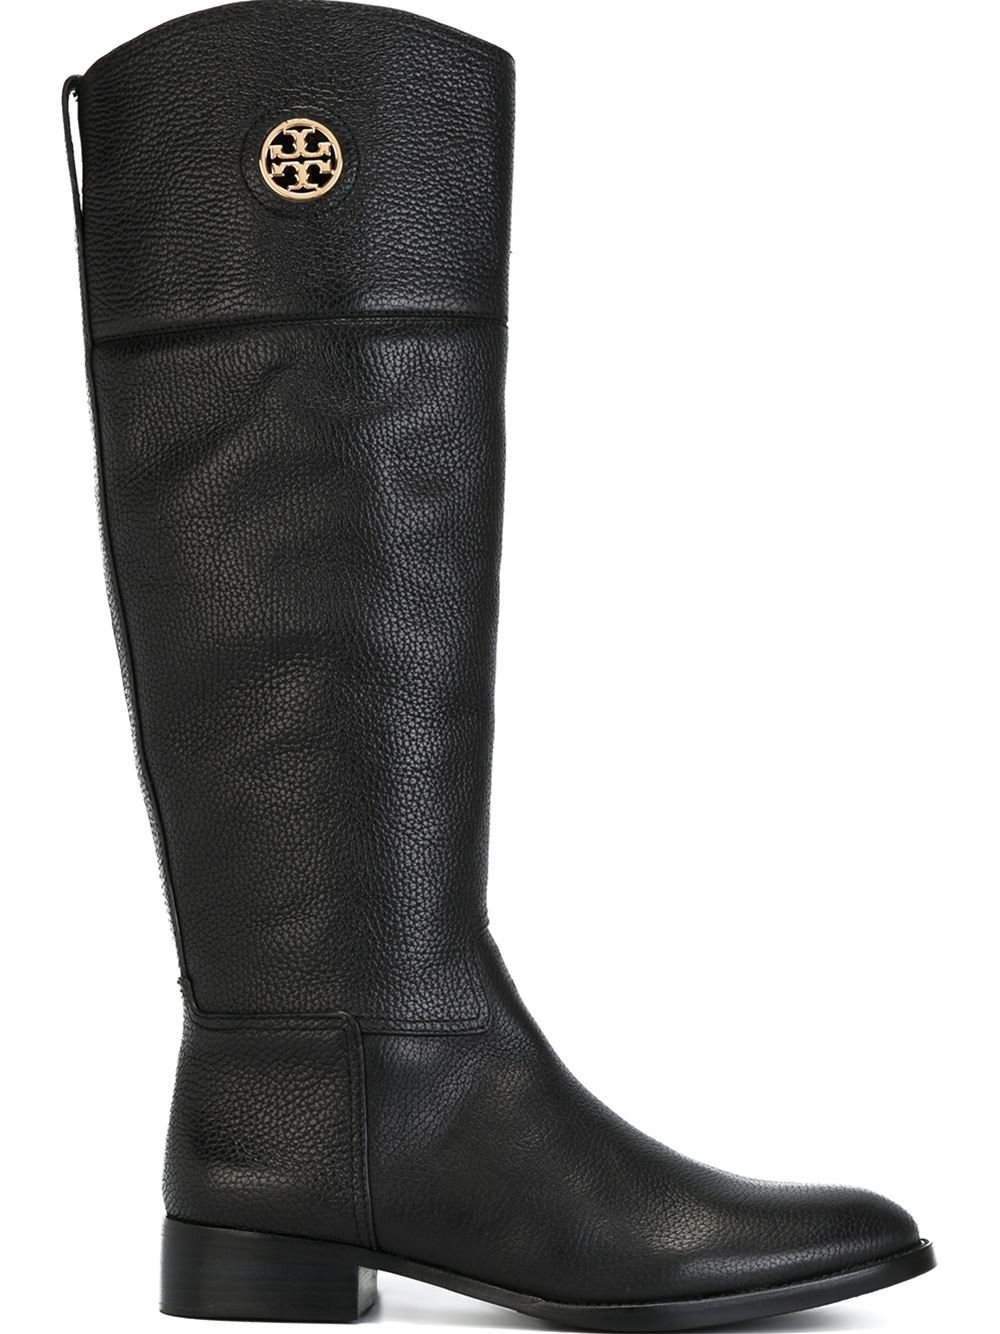 Leather Womens Knee High Boots with FREE Shipping & Exchanges, and a % price guarantee. Choose from a huge selection of Leather Womens Knee High Boots styles.